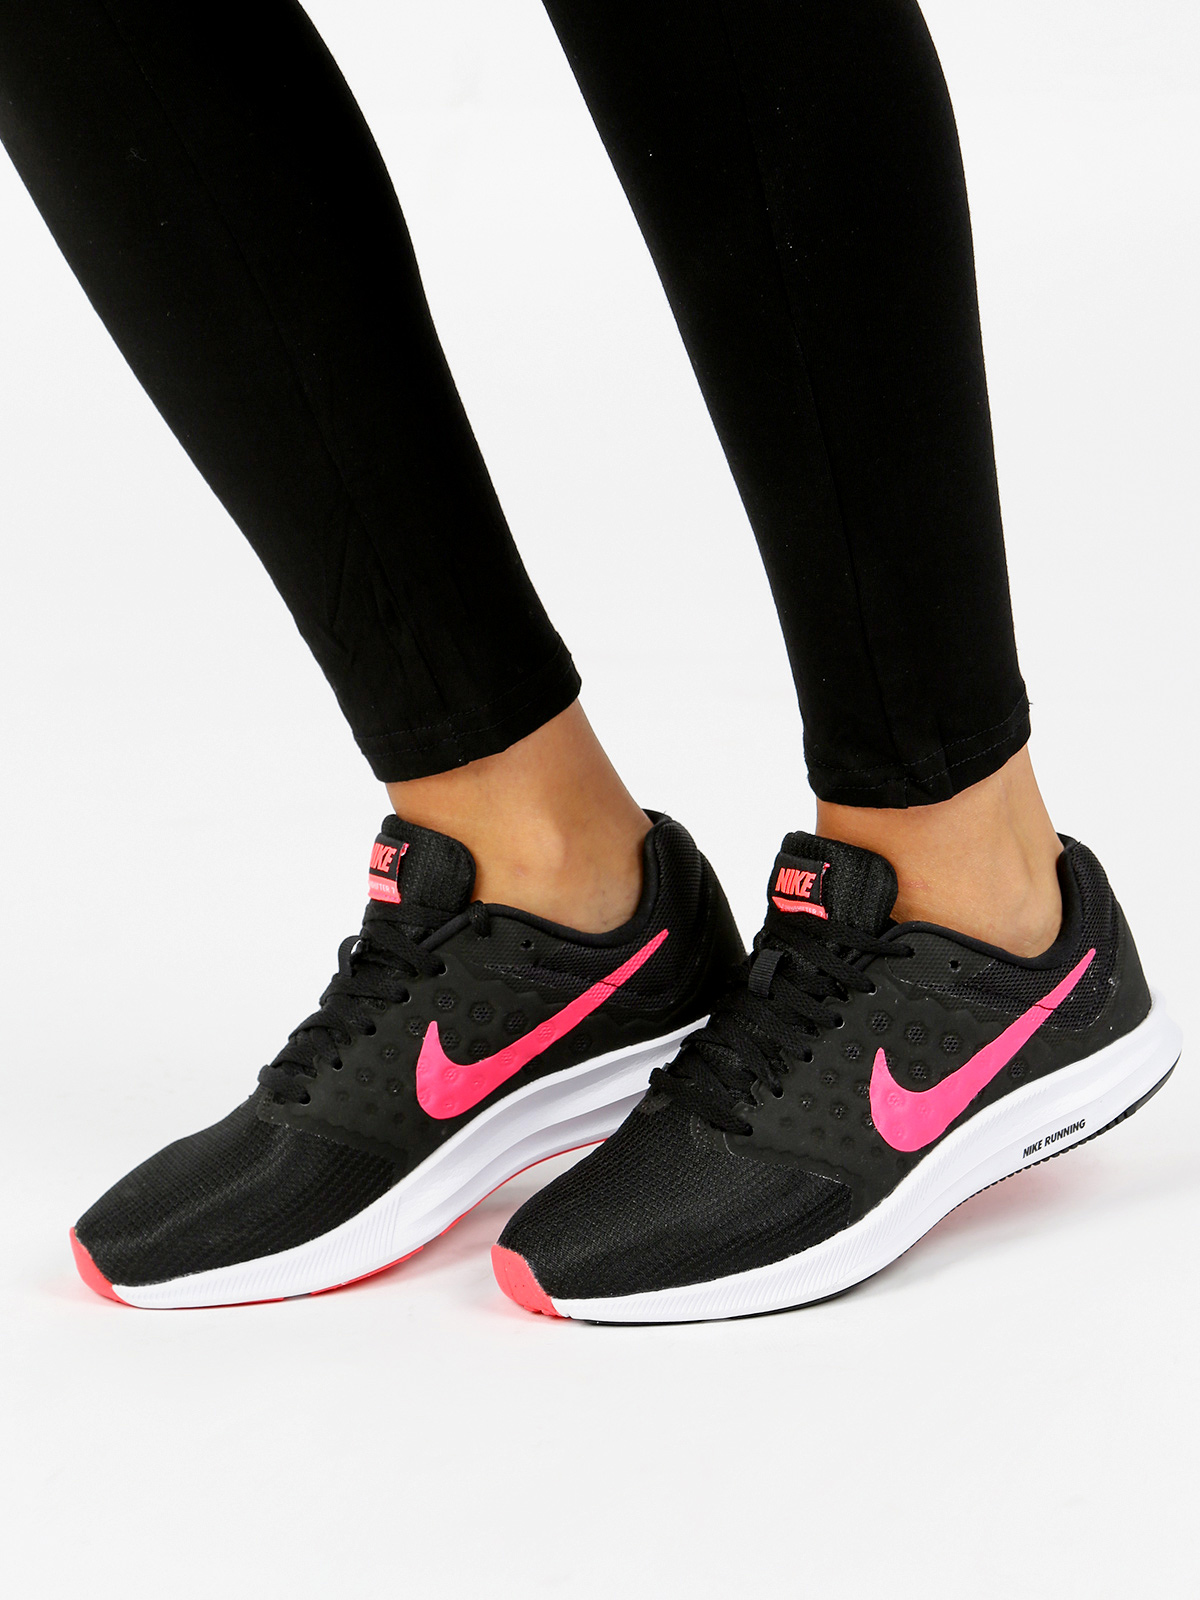 Fabric Nike sports sneakers-in Fitness & Cross-training